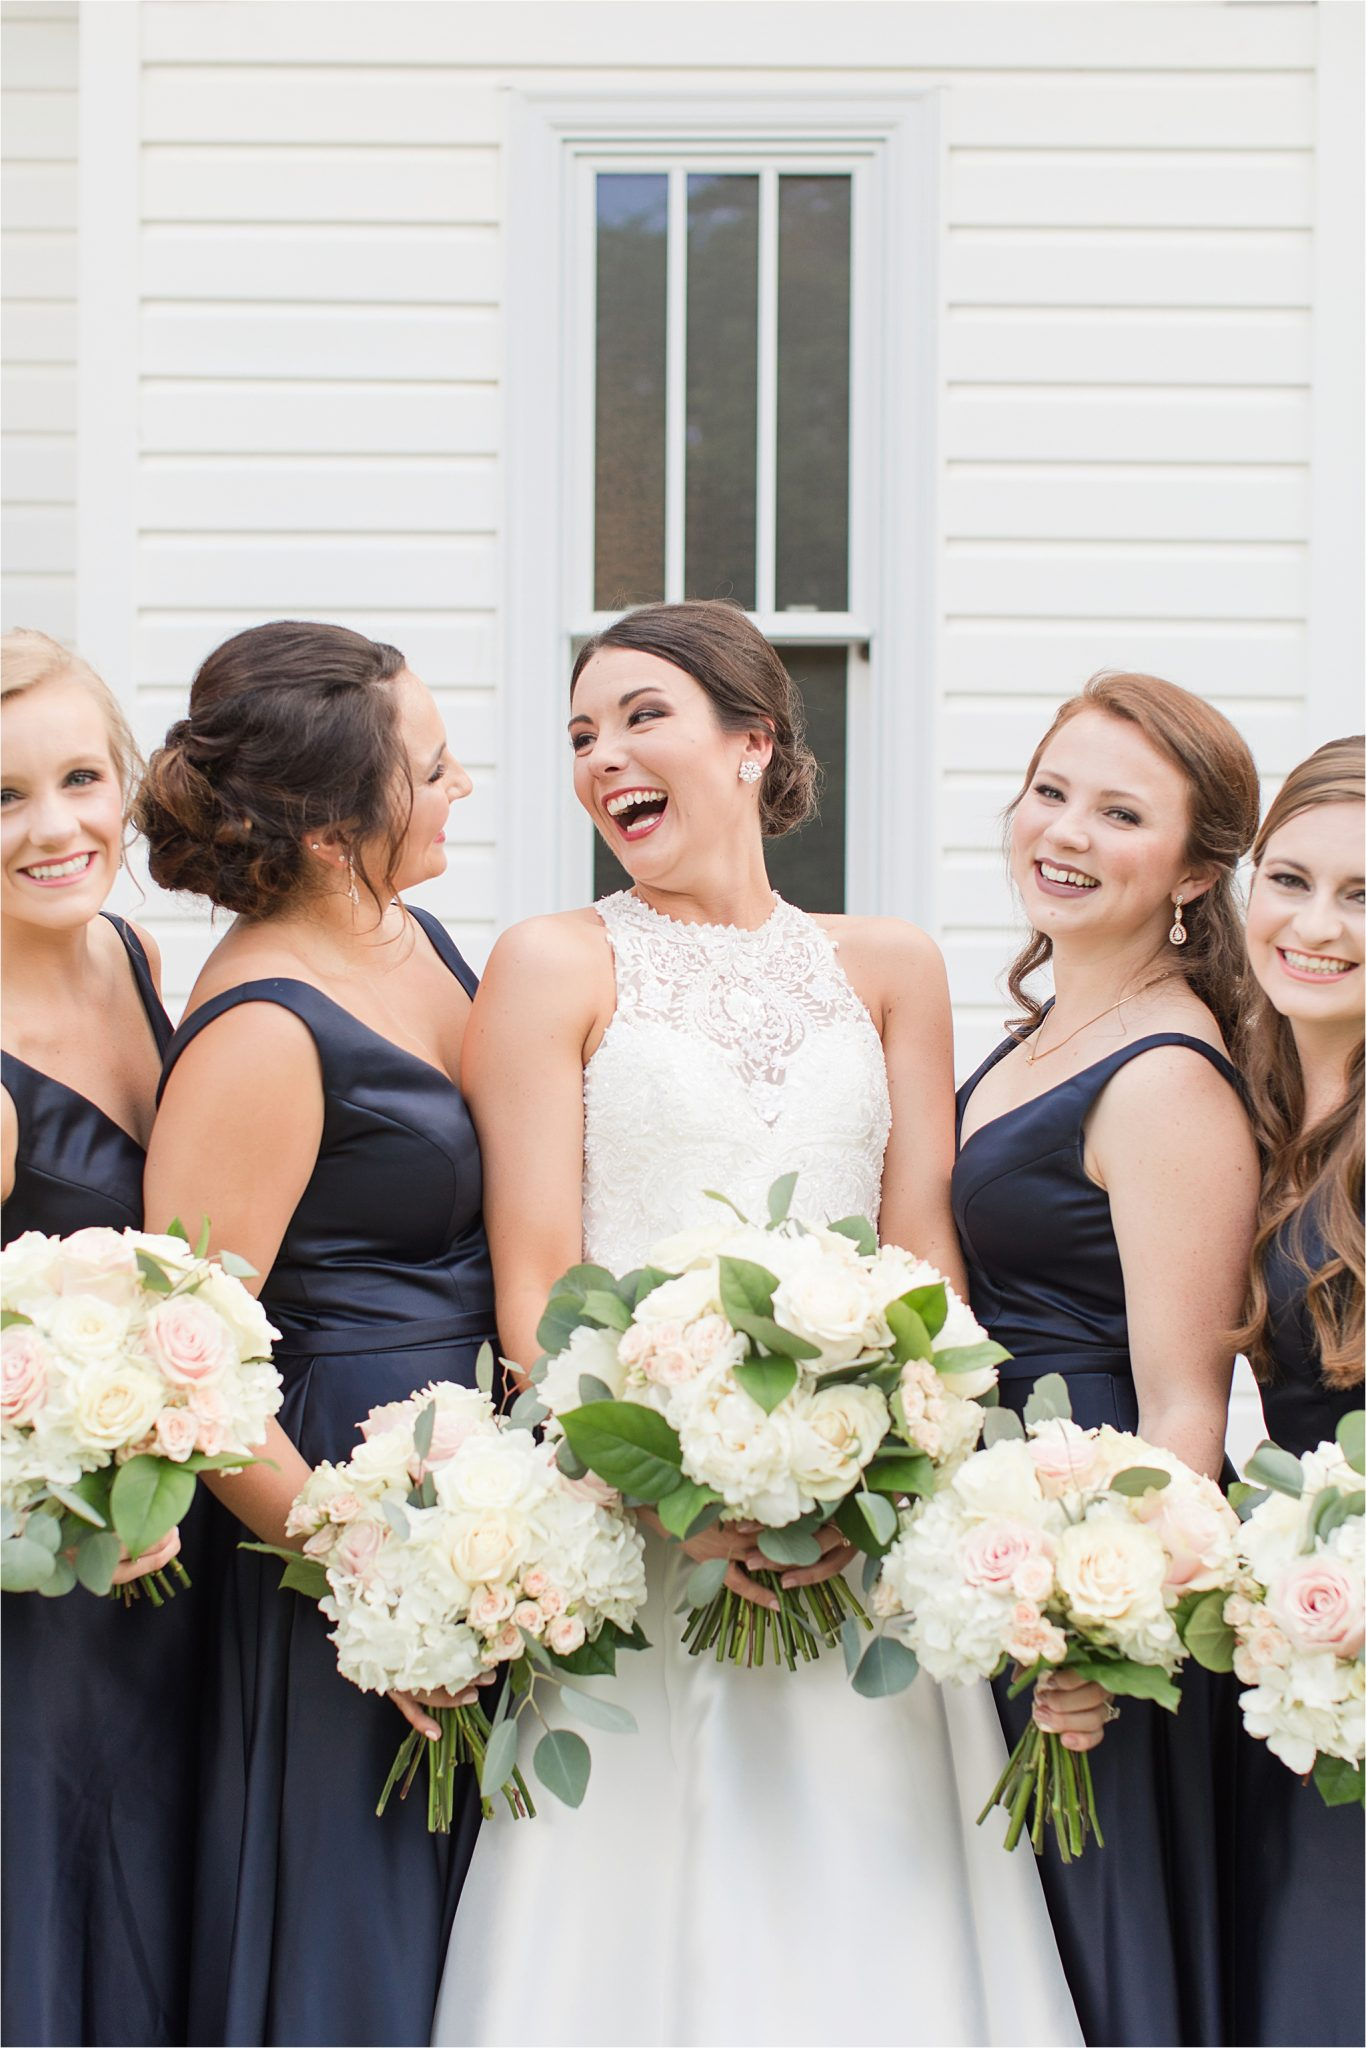 Sonnet House, Birmingham Alabama Wedding Photographer, Bride and bridesmaid, Wedding bouquets